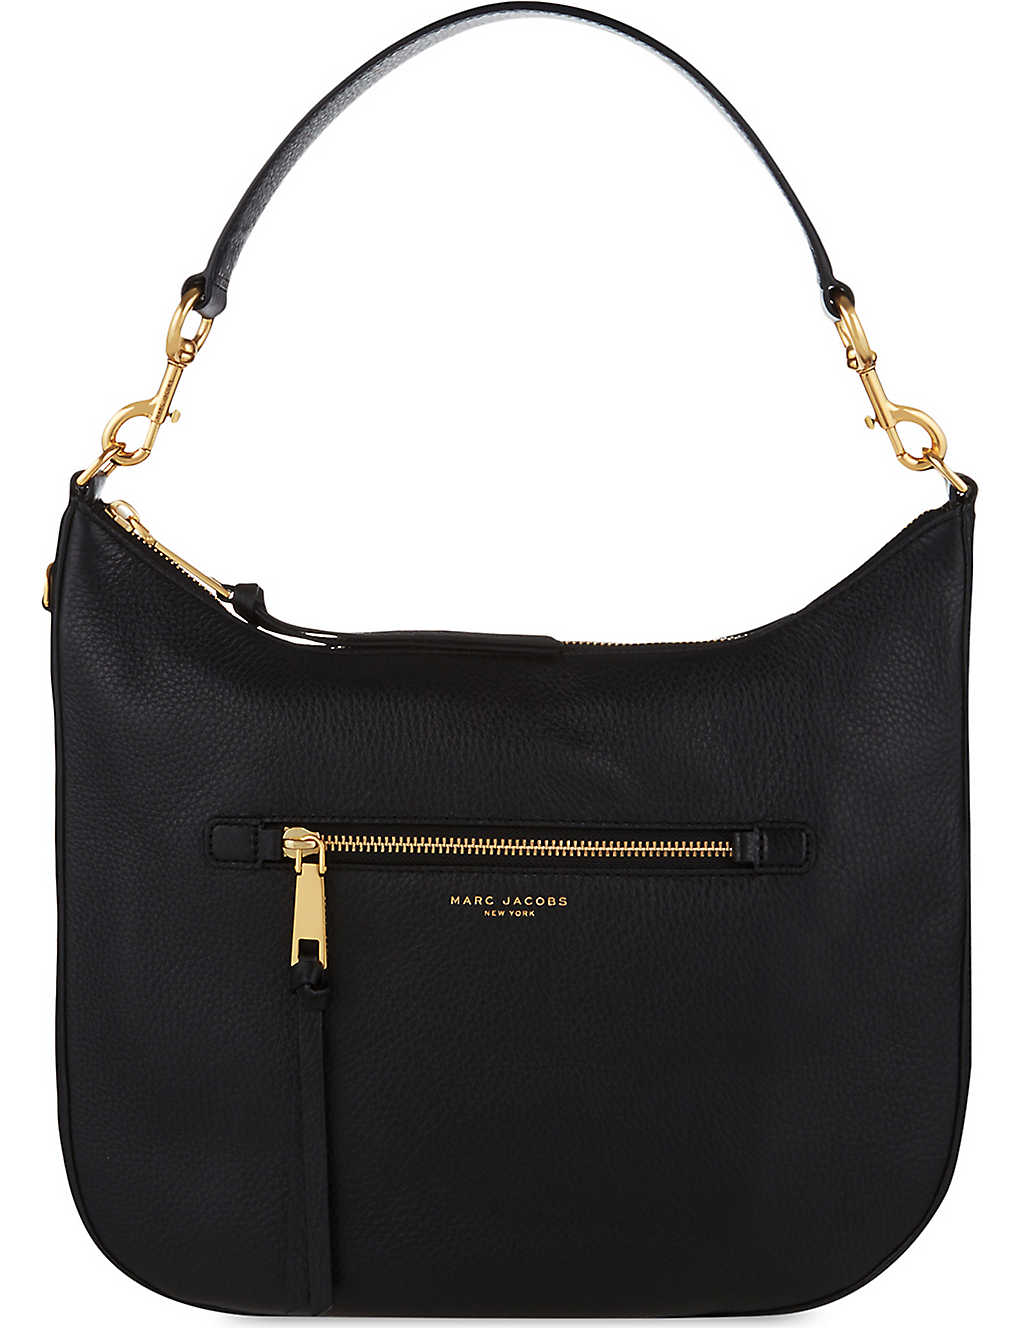 MARC JACOBS - Recruit leather hobo shoulder bag | Selfridges.com